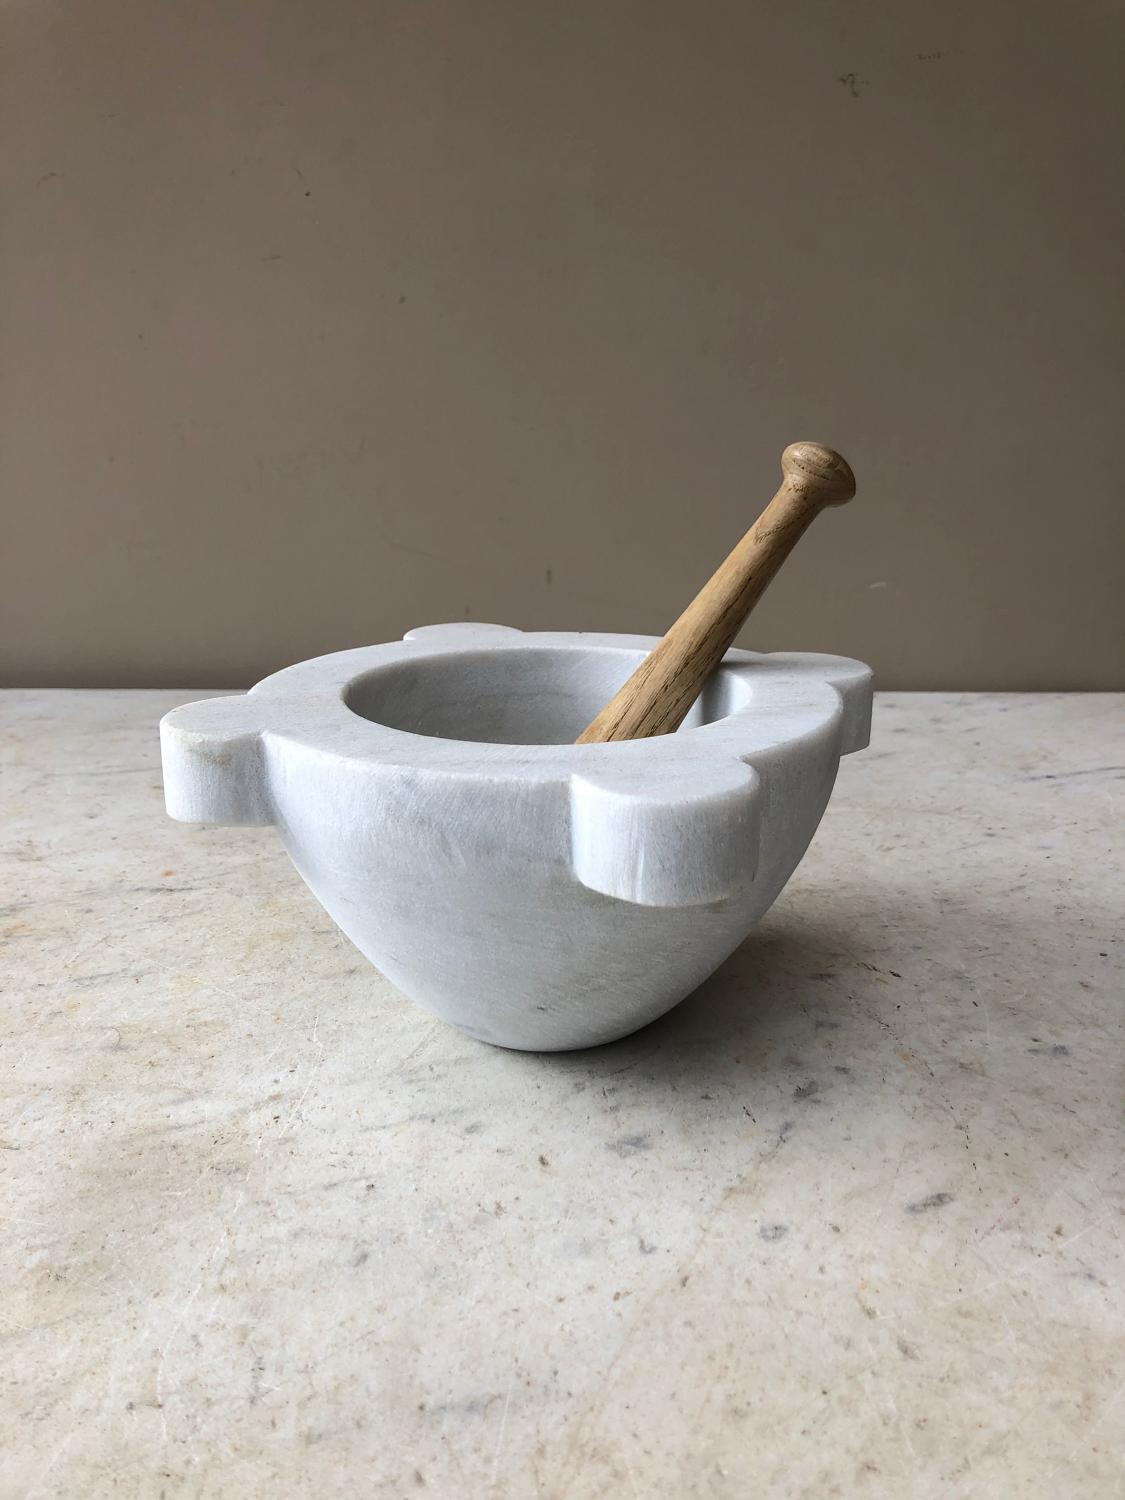 Rare Small Size Victorian Marble Mortar with Pestle